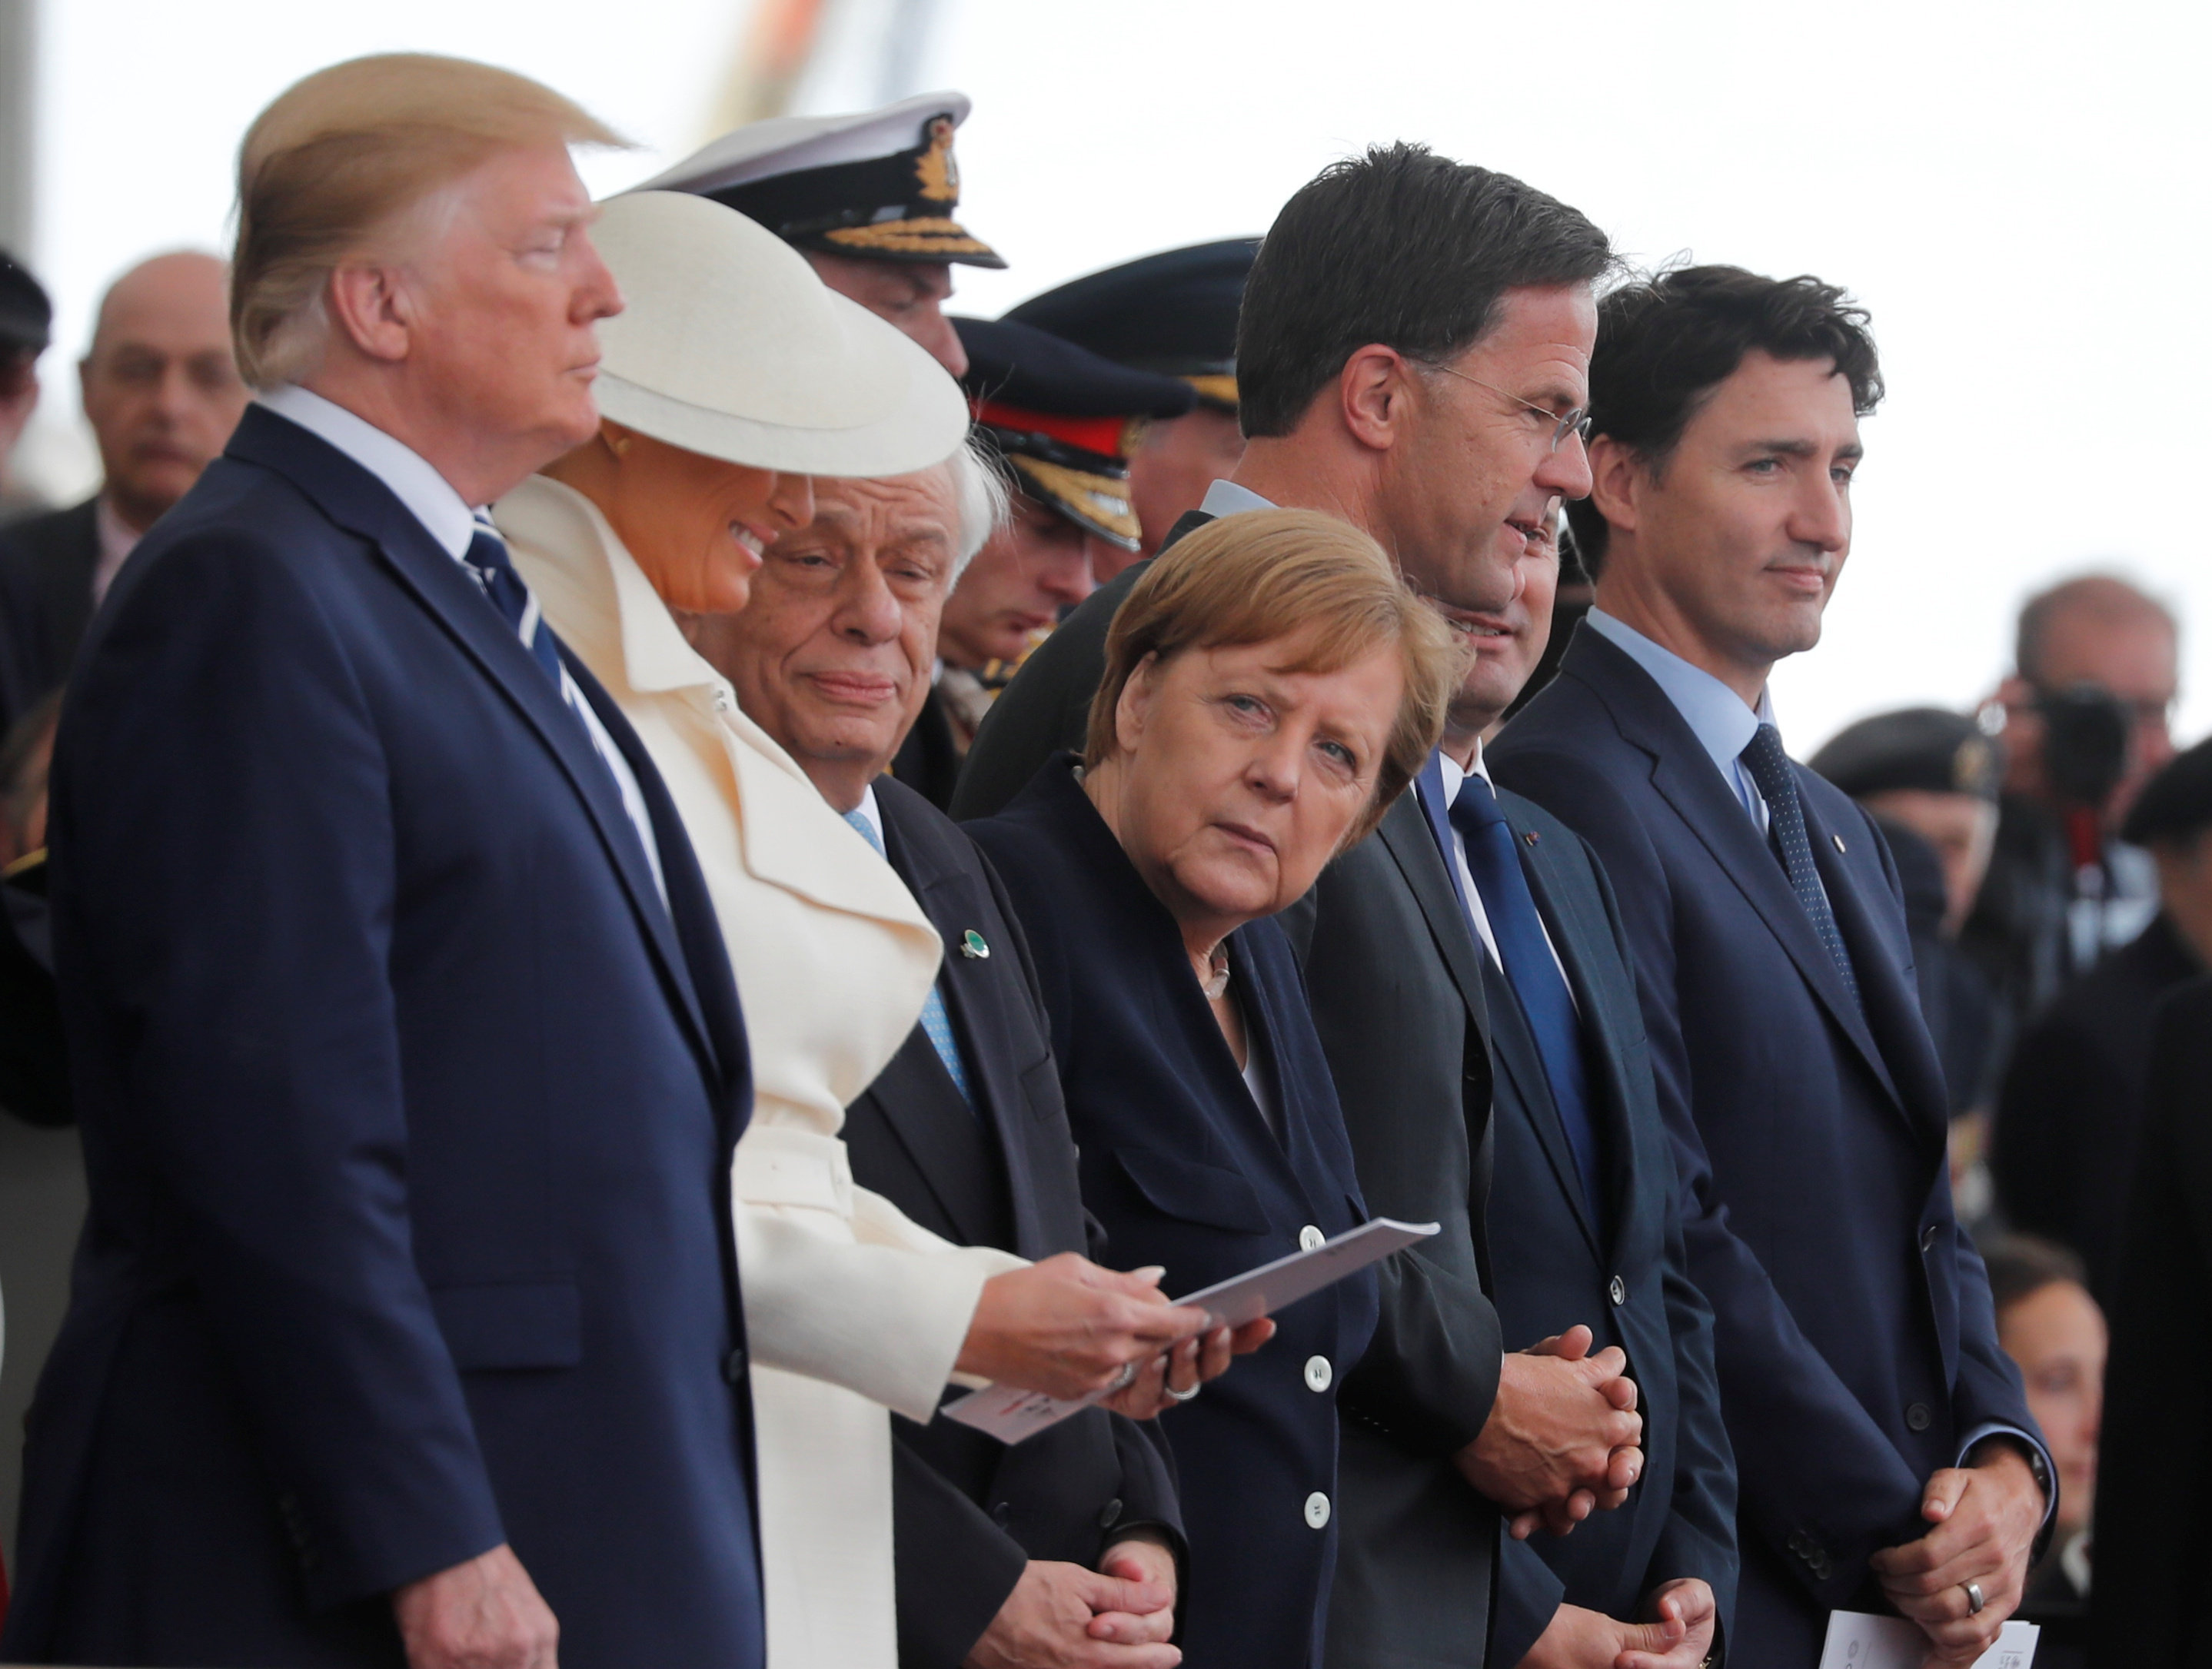 U.S. President Donald Trump, First Lady Melania, German Chancellor Angela Merkel, Dutch Prime Minister Mark Rutte and Canada's Prime Minister Justin Trudeau participate in an event to commemorate the 75th anniversary of D-Day, in Portsmouth, Britain, June 5, 2019